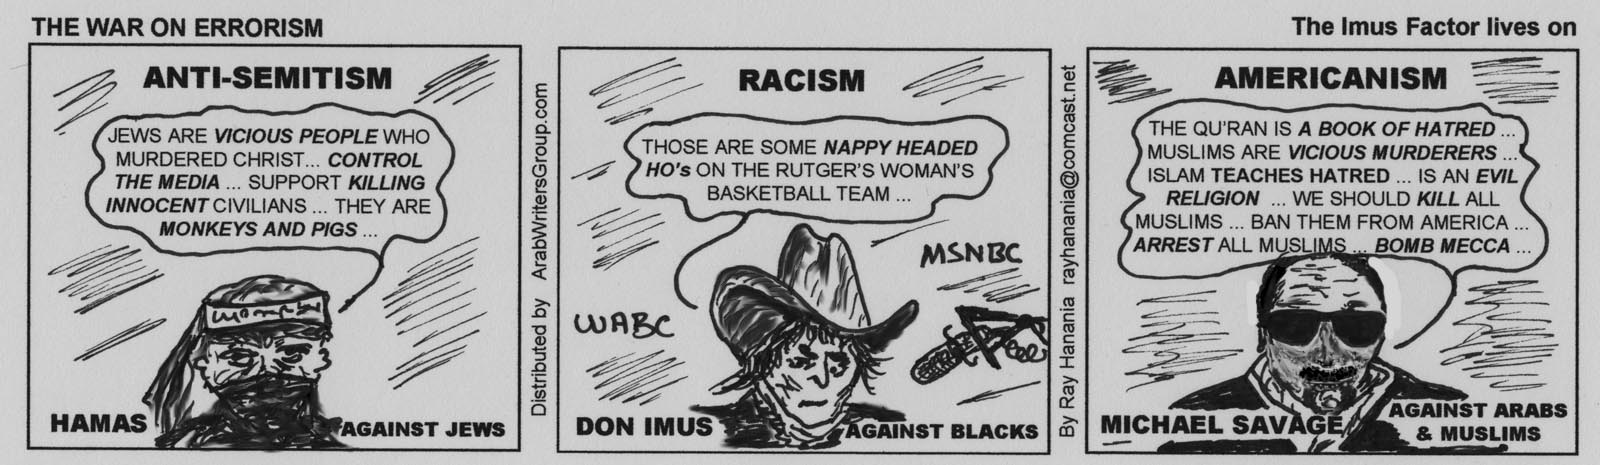 Cartoon anti semitism to racism to americanism for immediate war on errorism cartoon nov 18 2007 hamas don imus malvernweather Image collections